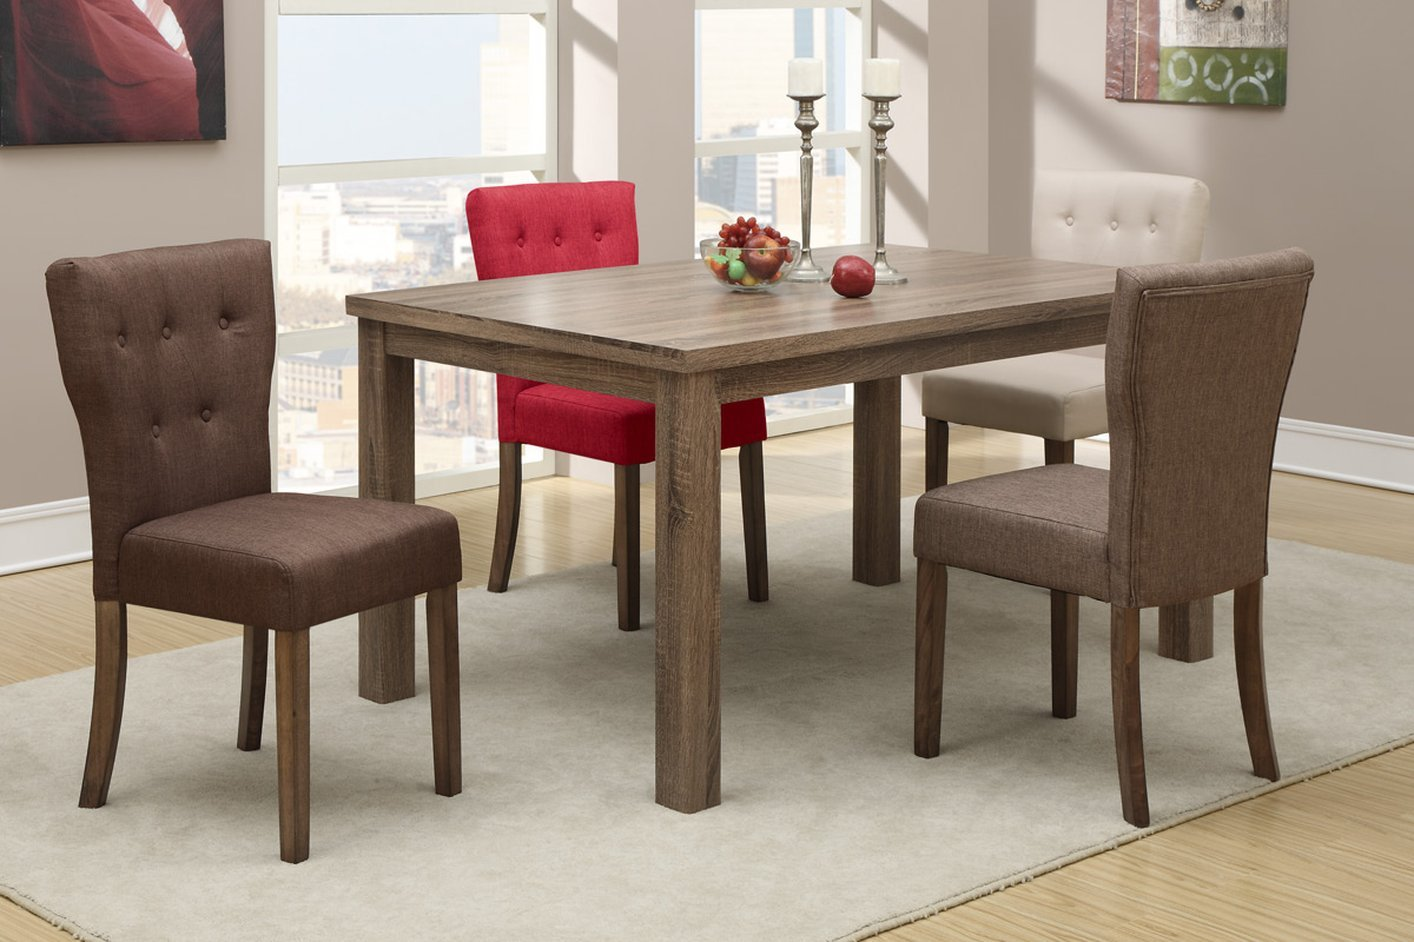 brown fabric dining chair brown fabric dining chair